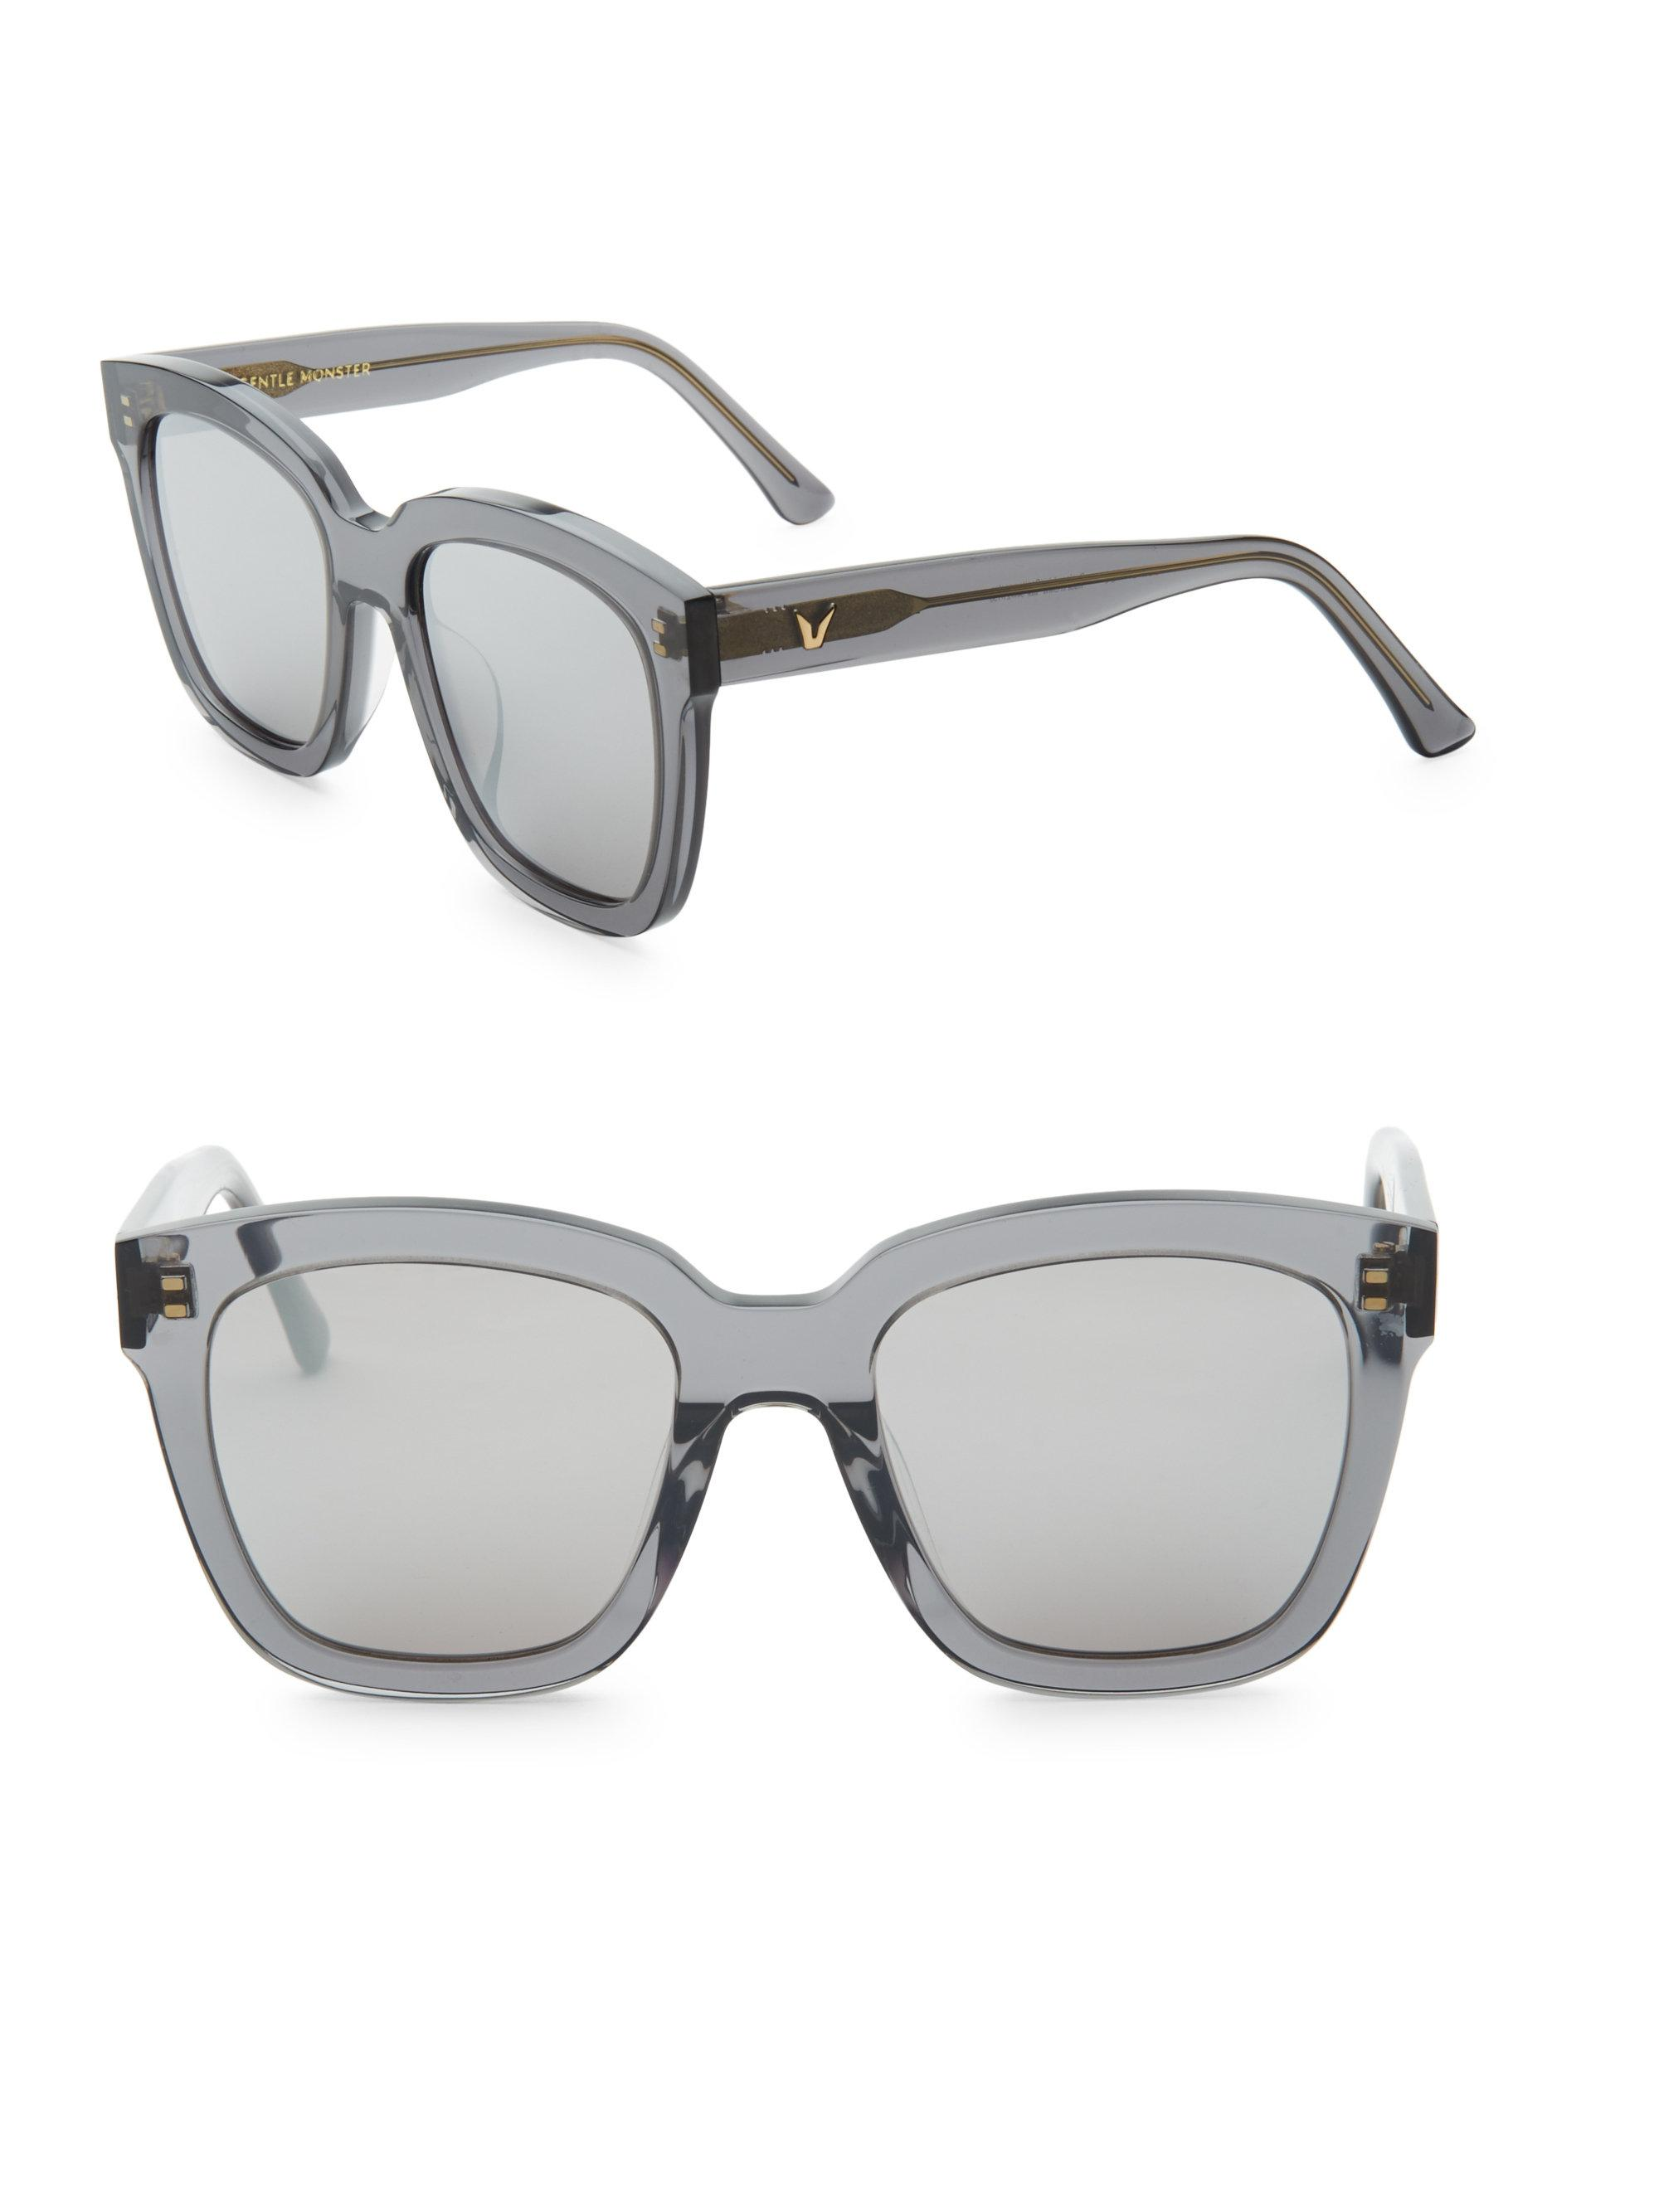 1d710d22f0 Lyst - Gentle Monster Dreamer Hoff Ombre Square Sunglasses in Gray ...